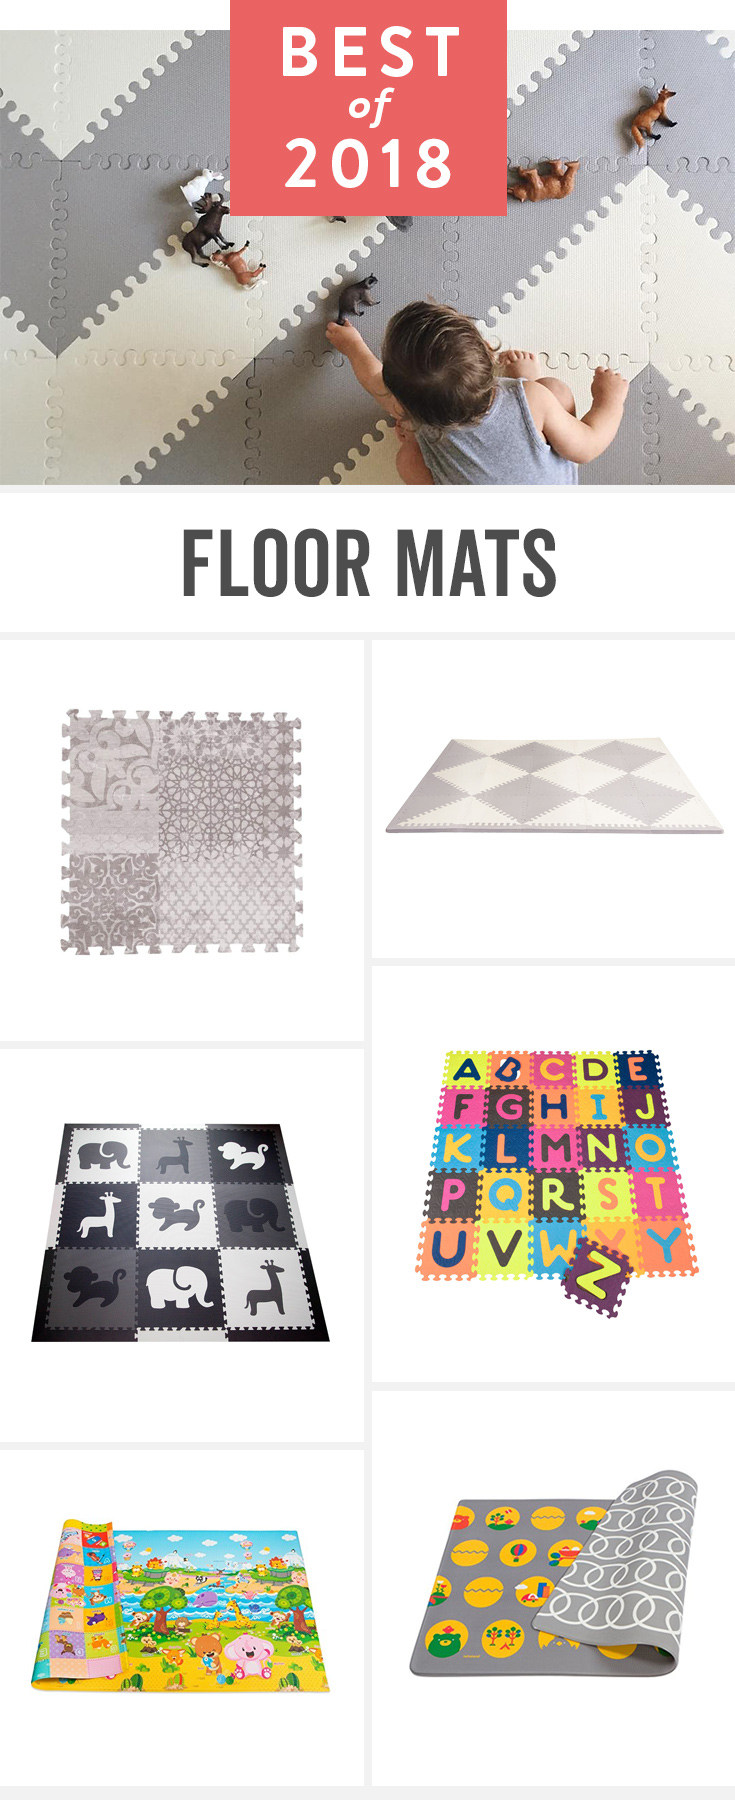 Big W Floor Mat 6 Best Nursery Floor Mats For Babies Of 2019